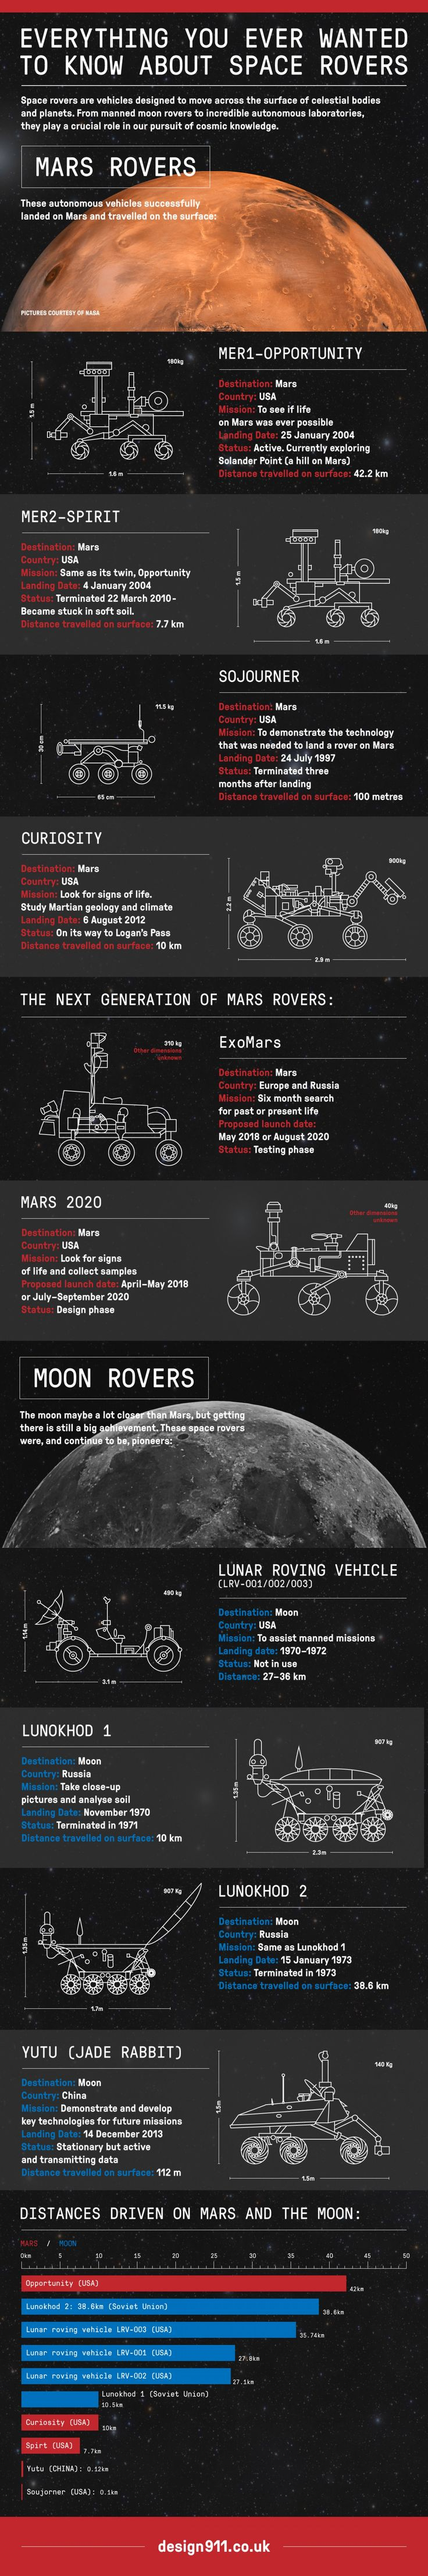 Everything You Ever Wanted to Know About Space Rovers #infographic